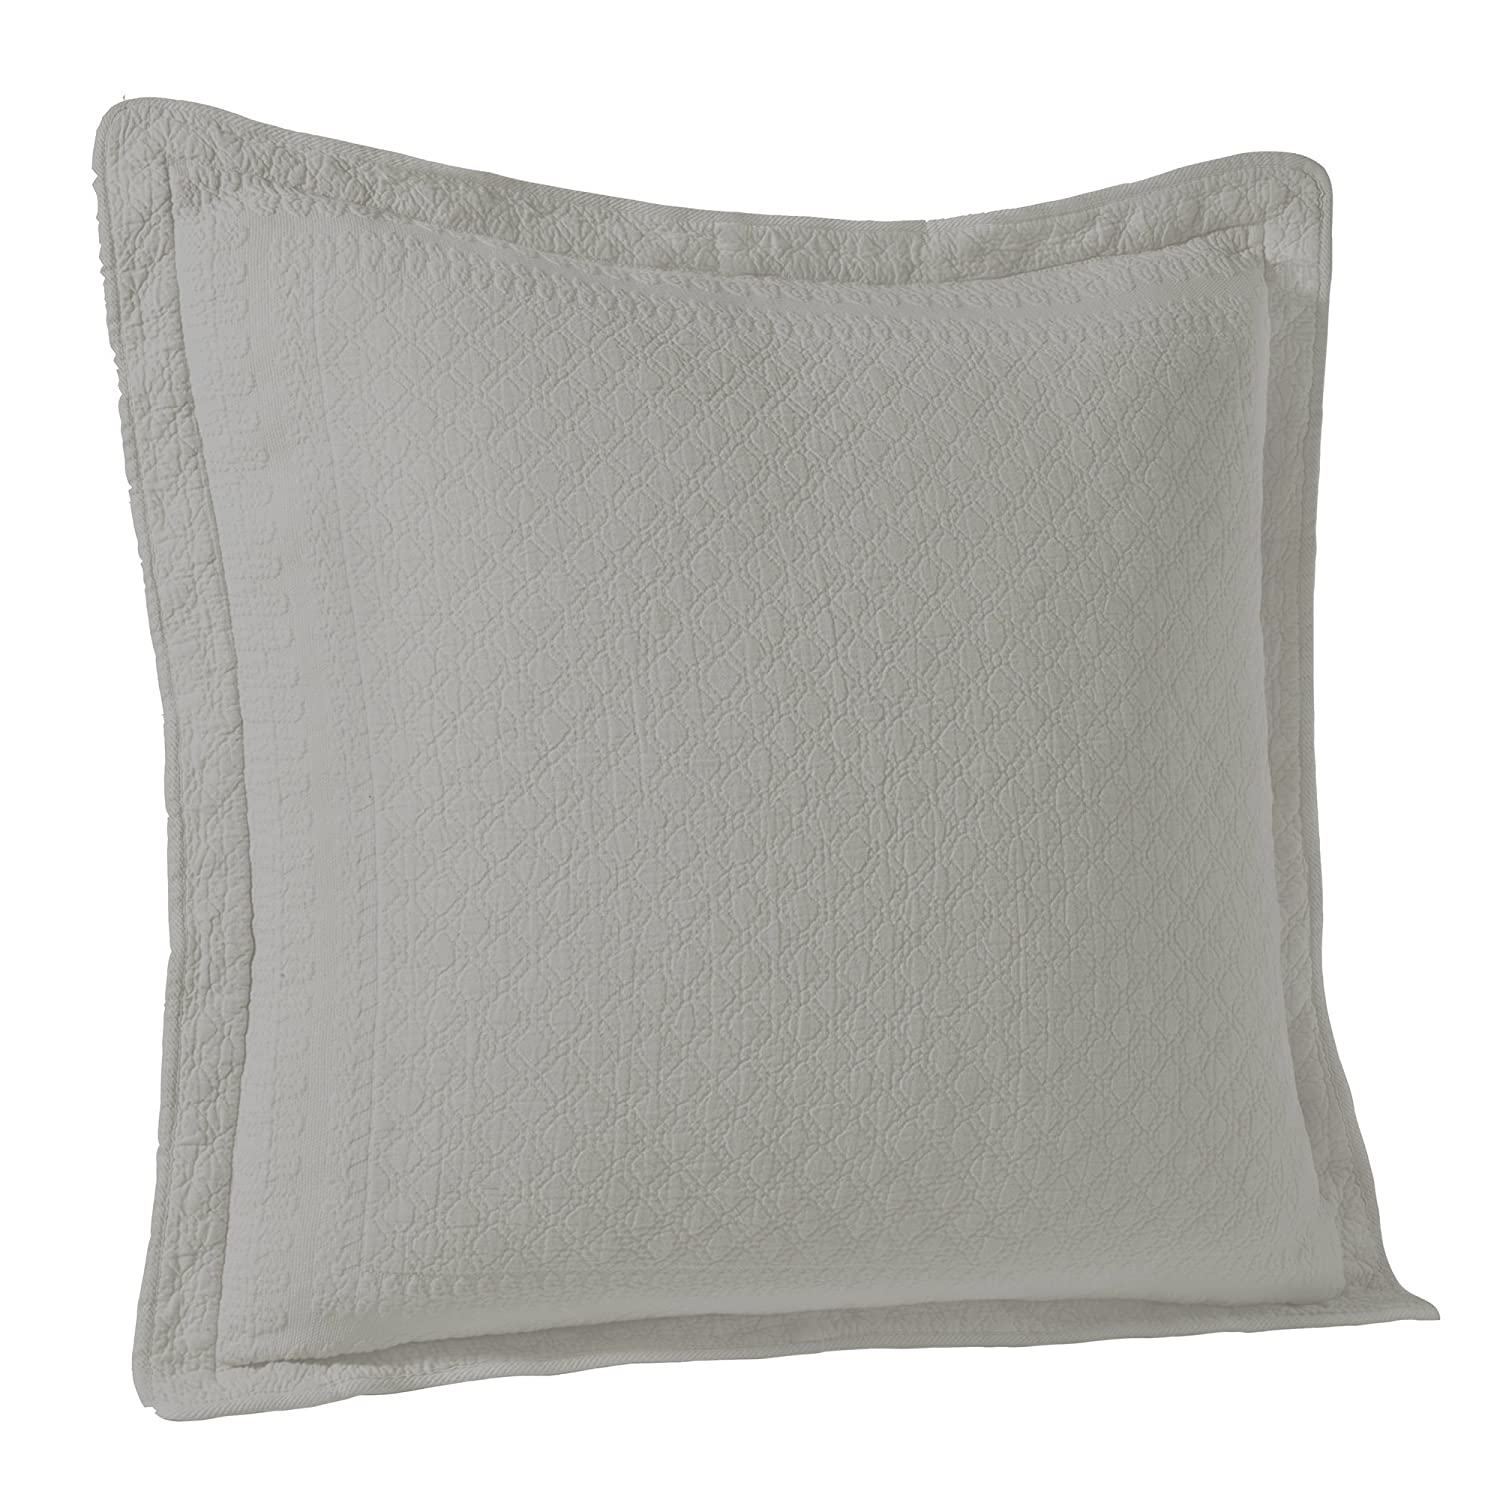 """Grey Standard Size Pillow cover 20/""""x26/""""+0.5/"""" flange Elegant Life 100/% Cotton Night Blossom Floral Pattern Embroidery Pillow Shams"""